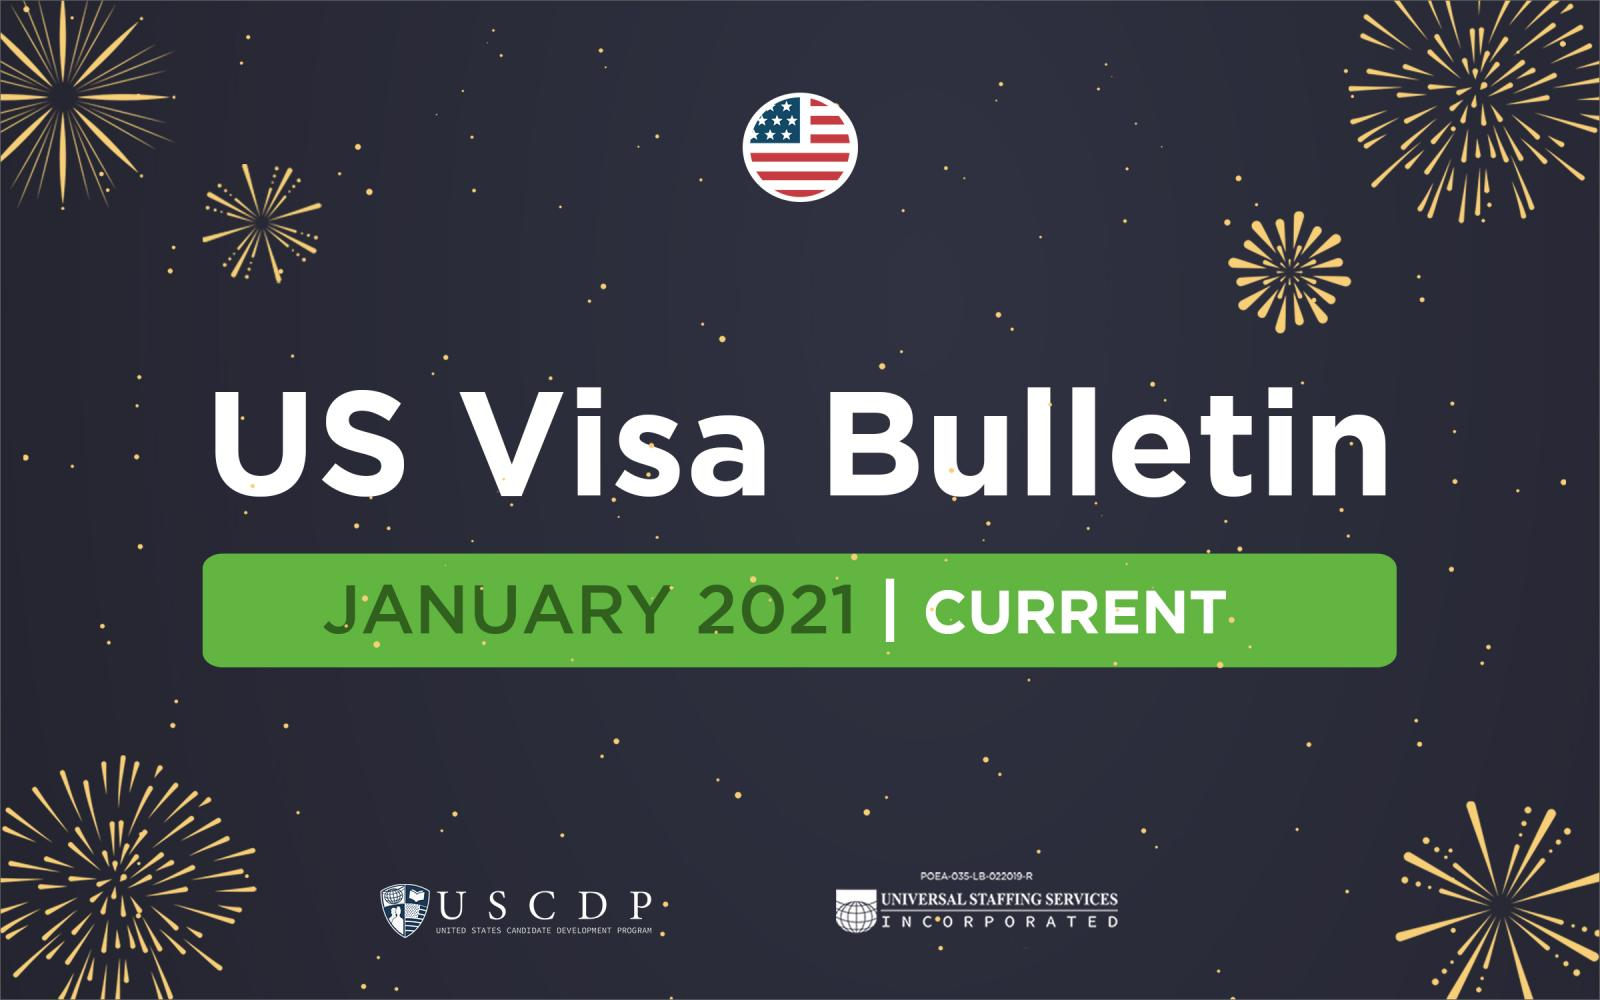 US Visa Bulletin Article Header